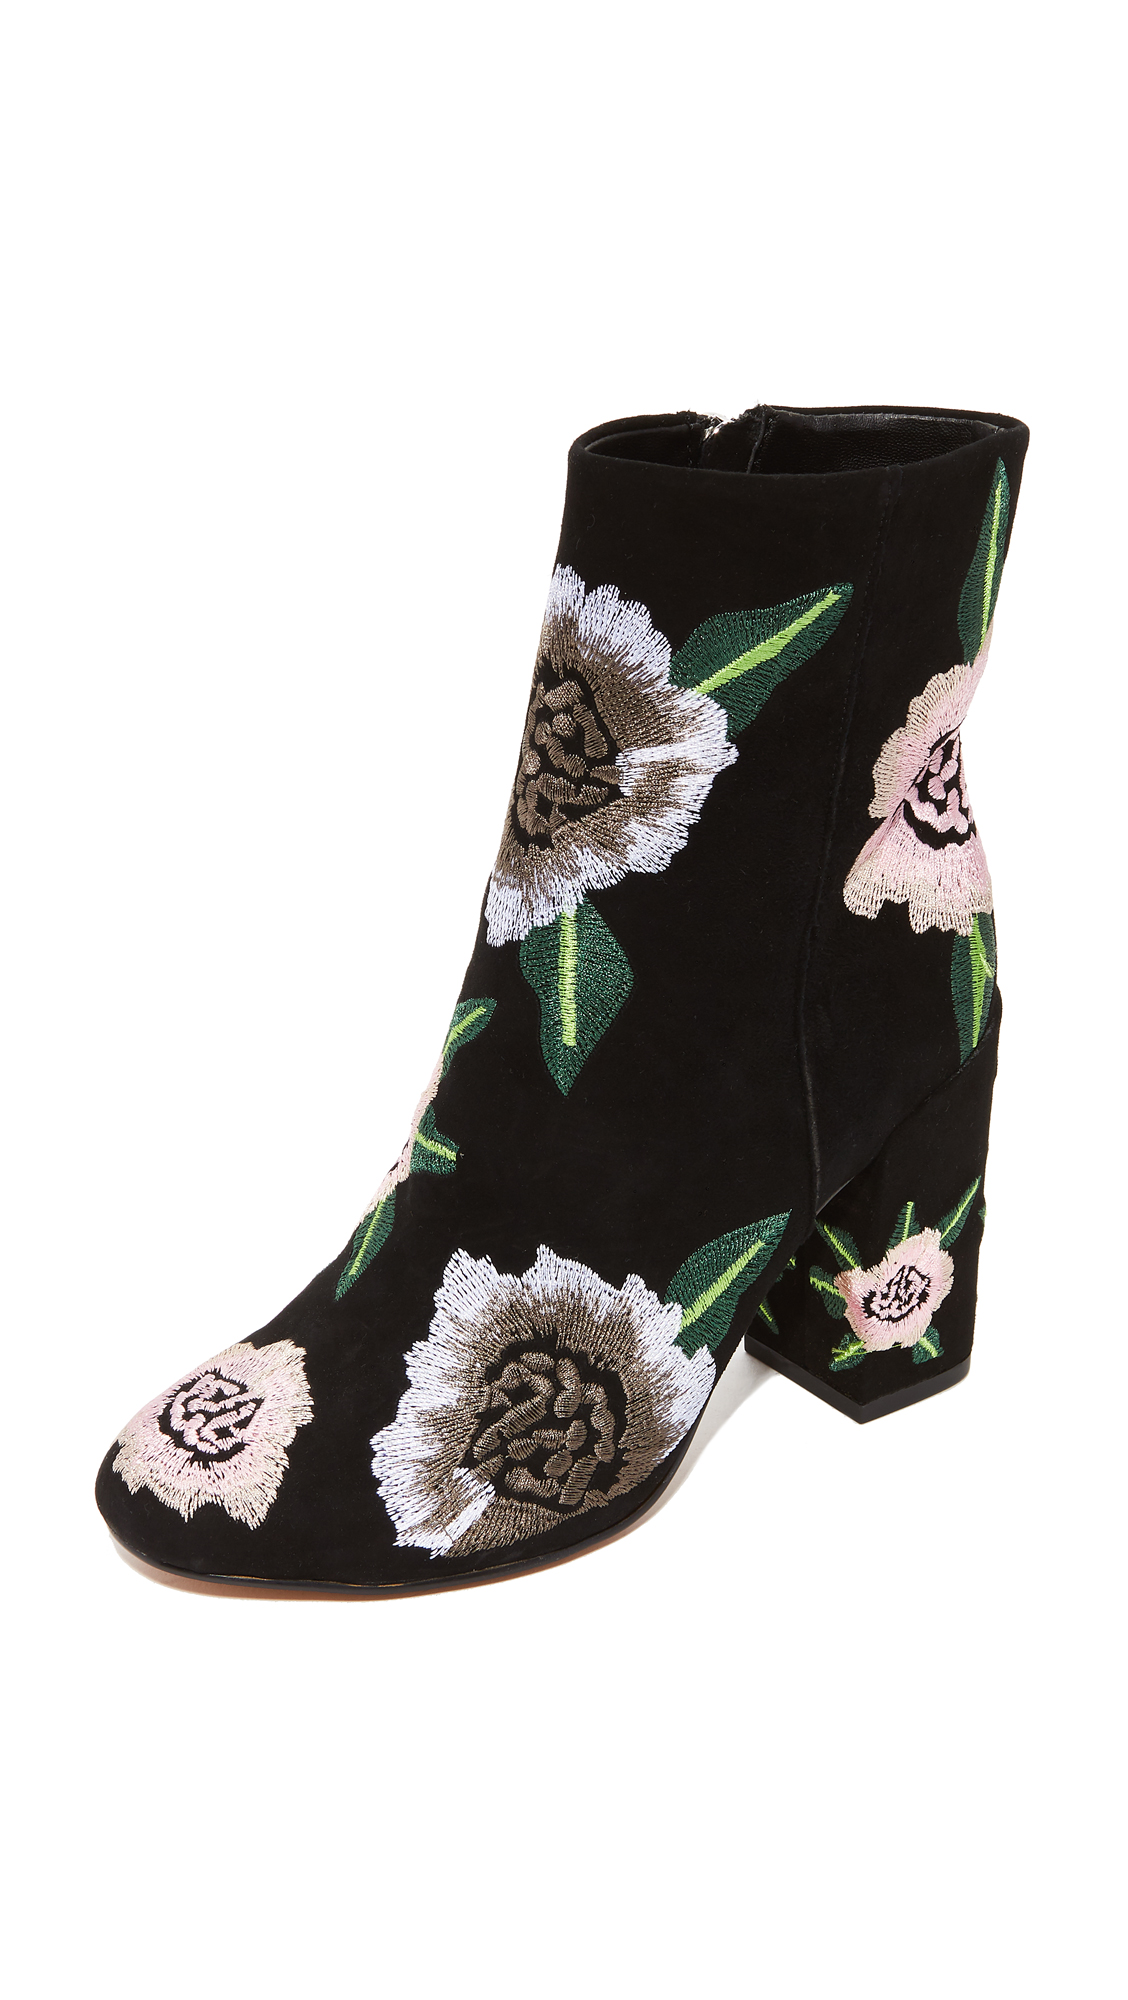 Rebecca Minkoff Bryce Embroidered Booties - Black/Floral